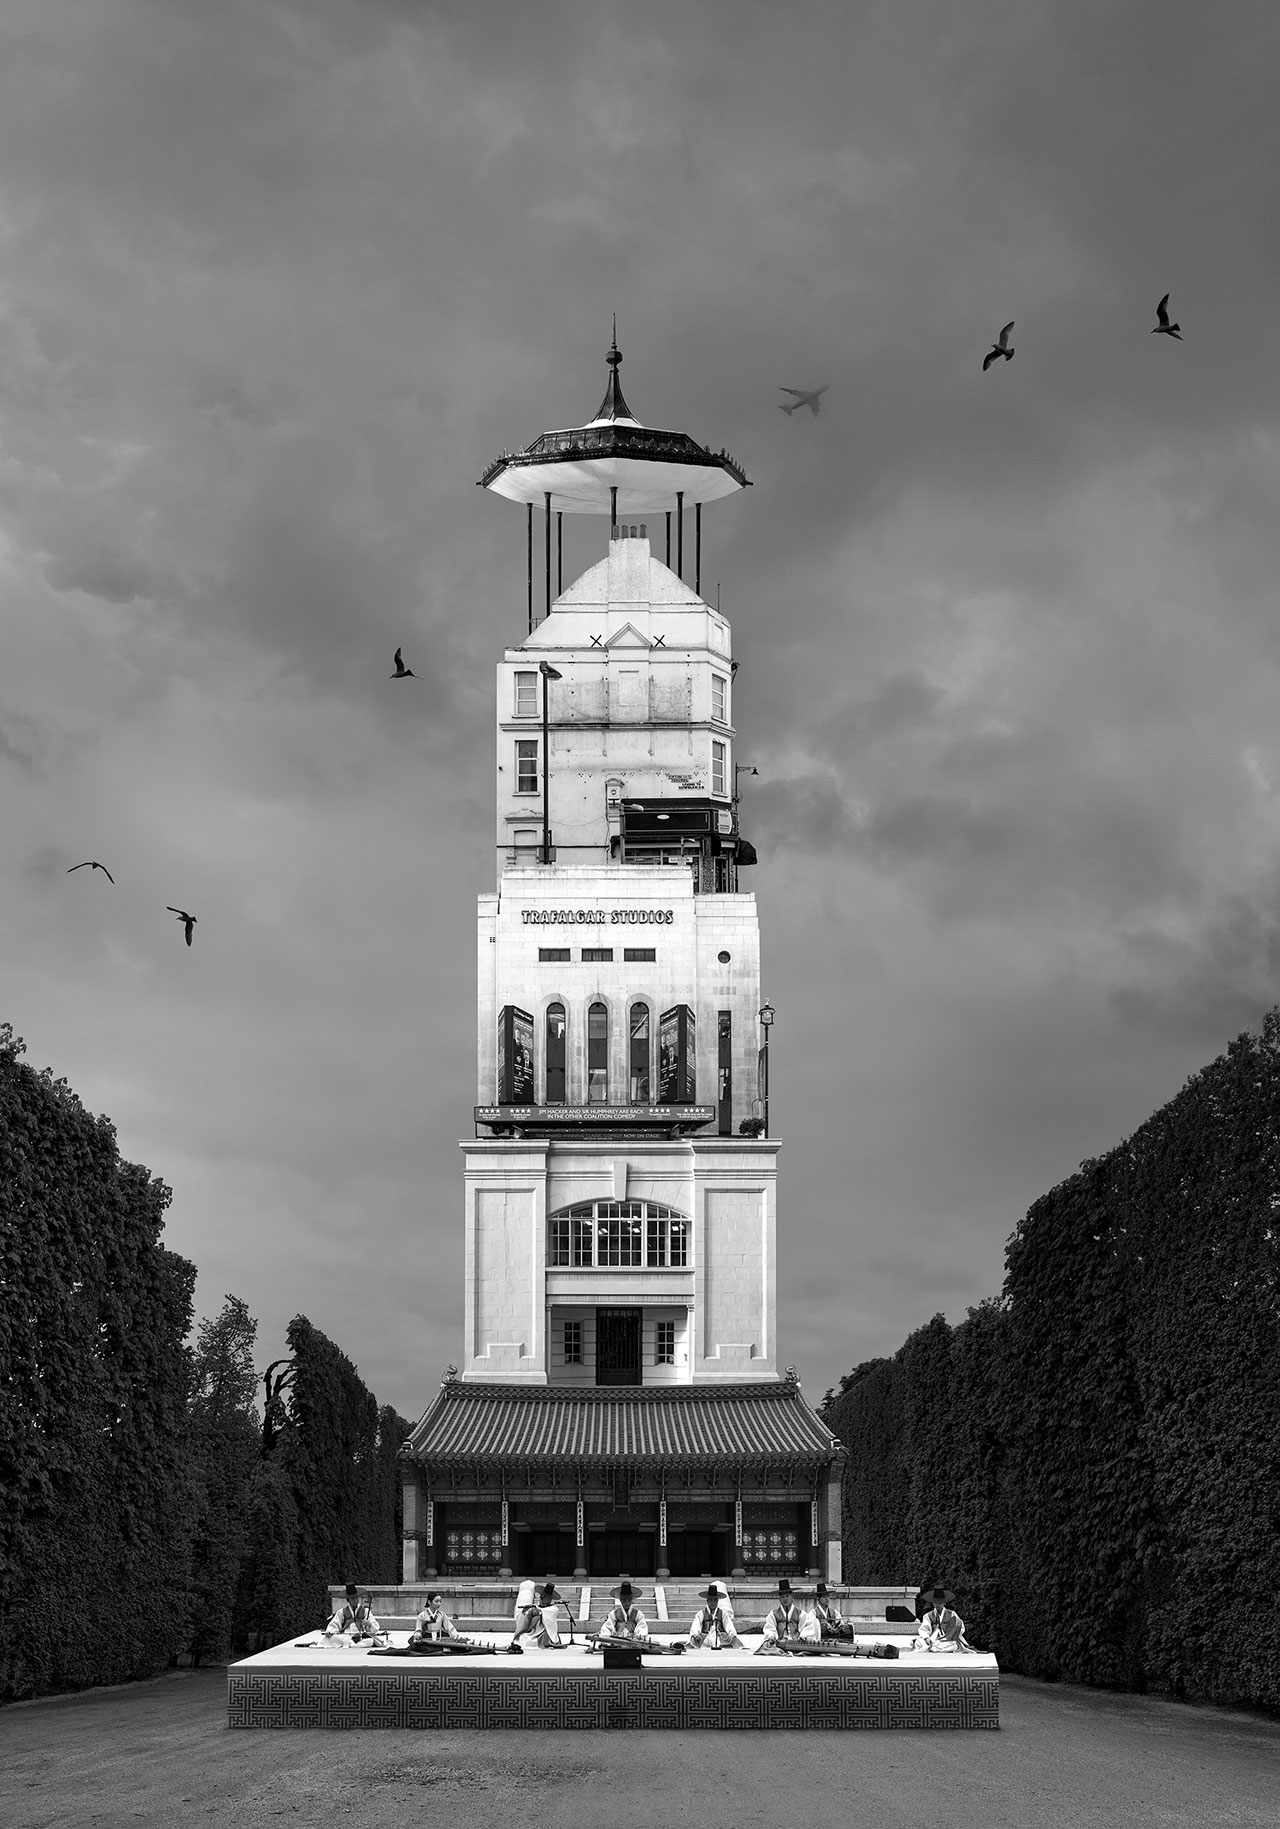 Beomsik Won,Archisculpture 031, 2014. Archival pigment print, 100x70 or 171x120cm.